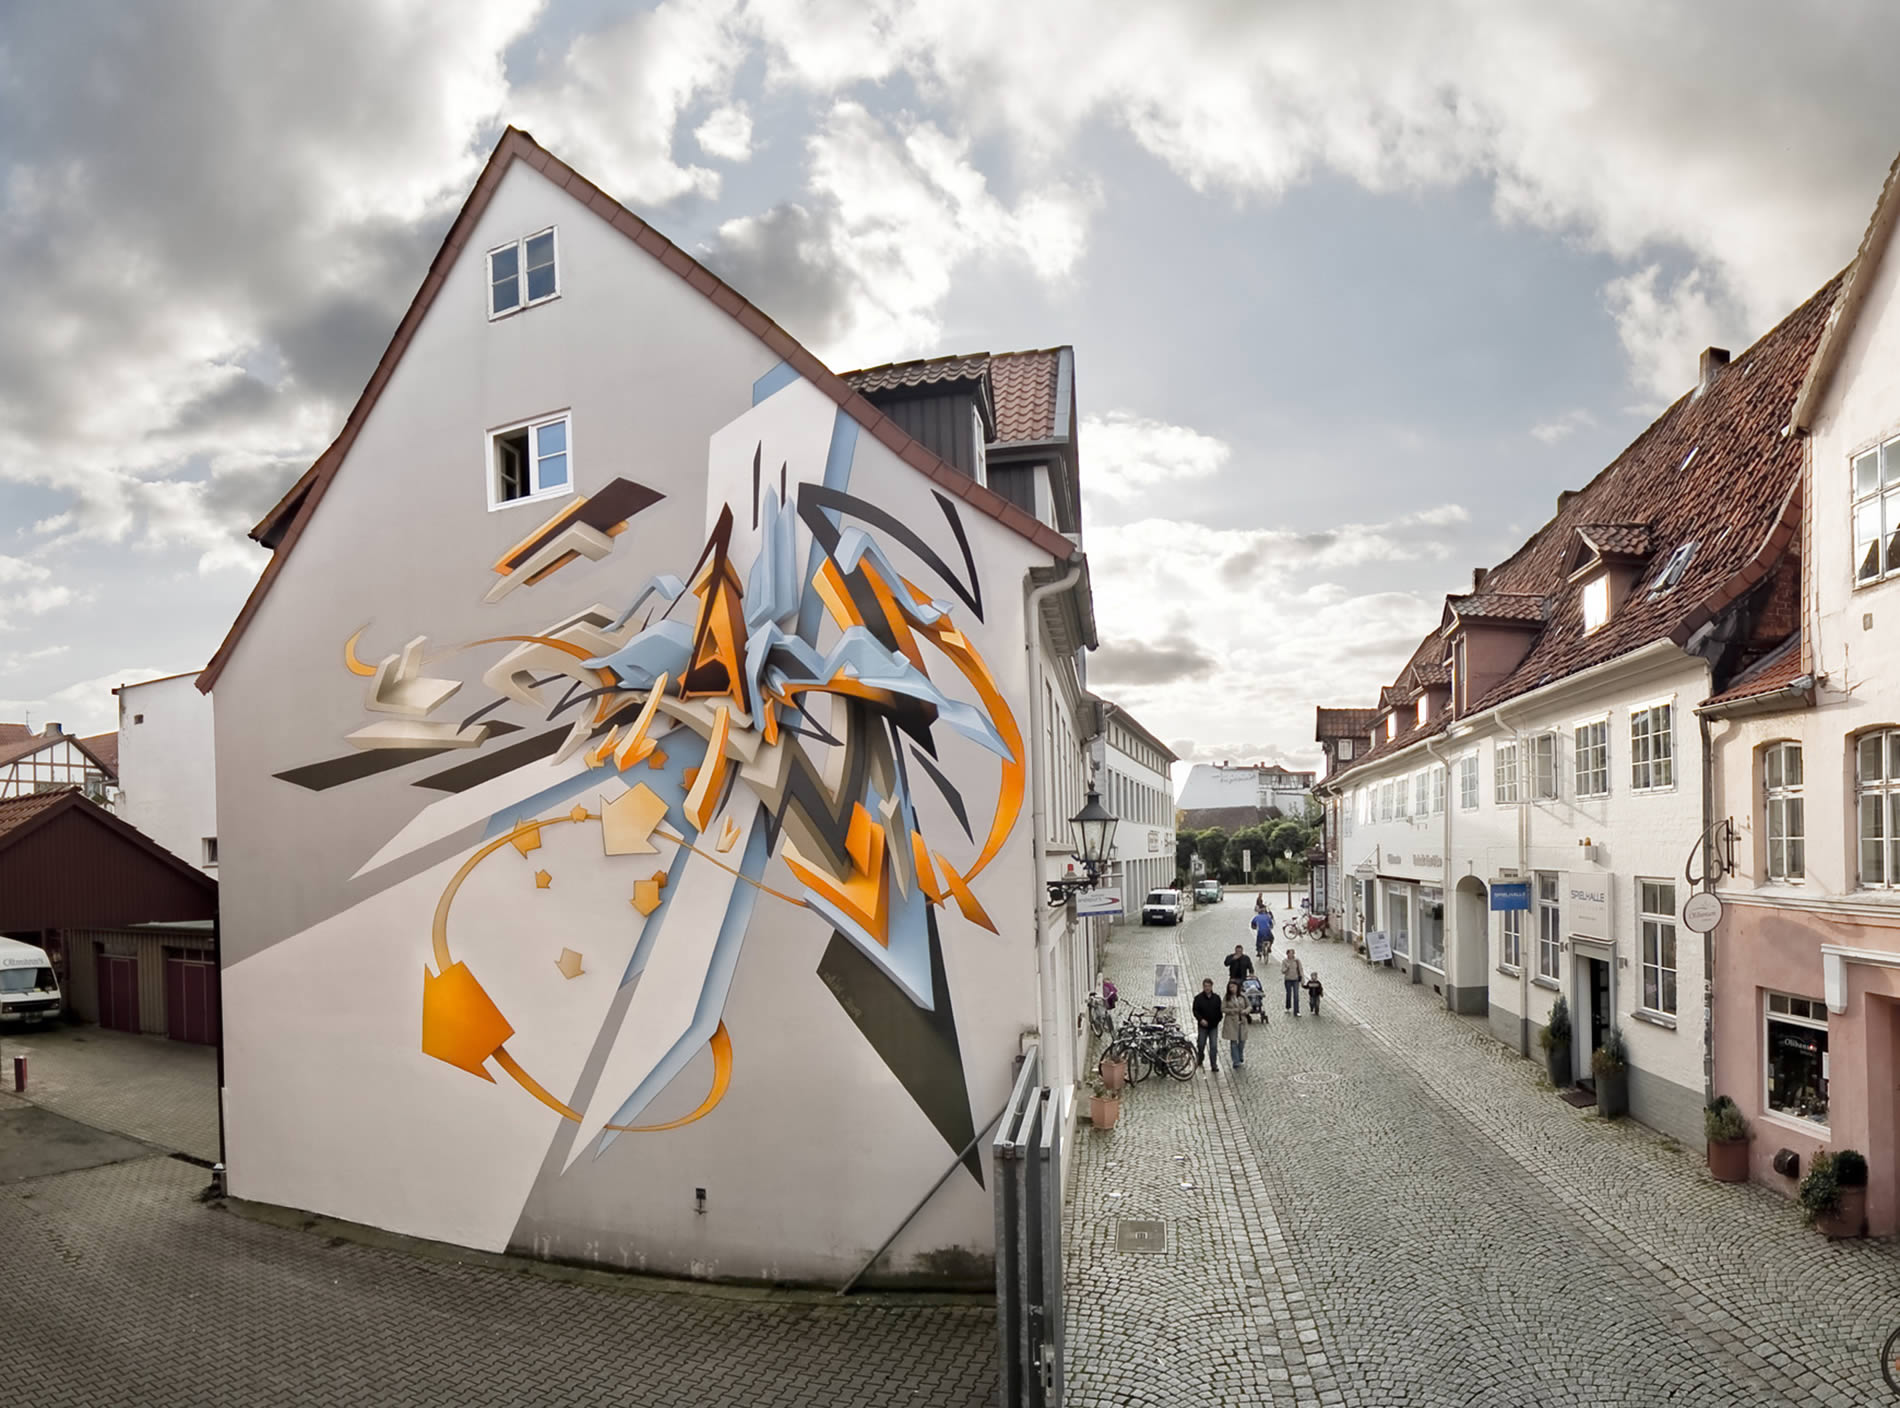 3d graffiti on building, art by daim